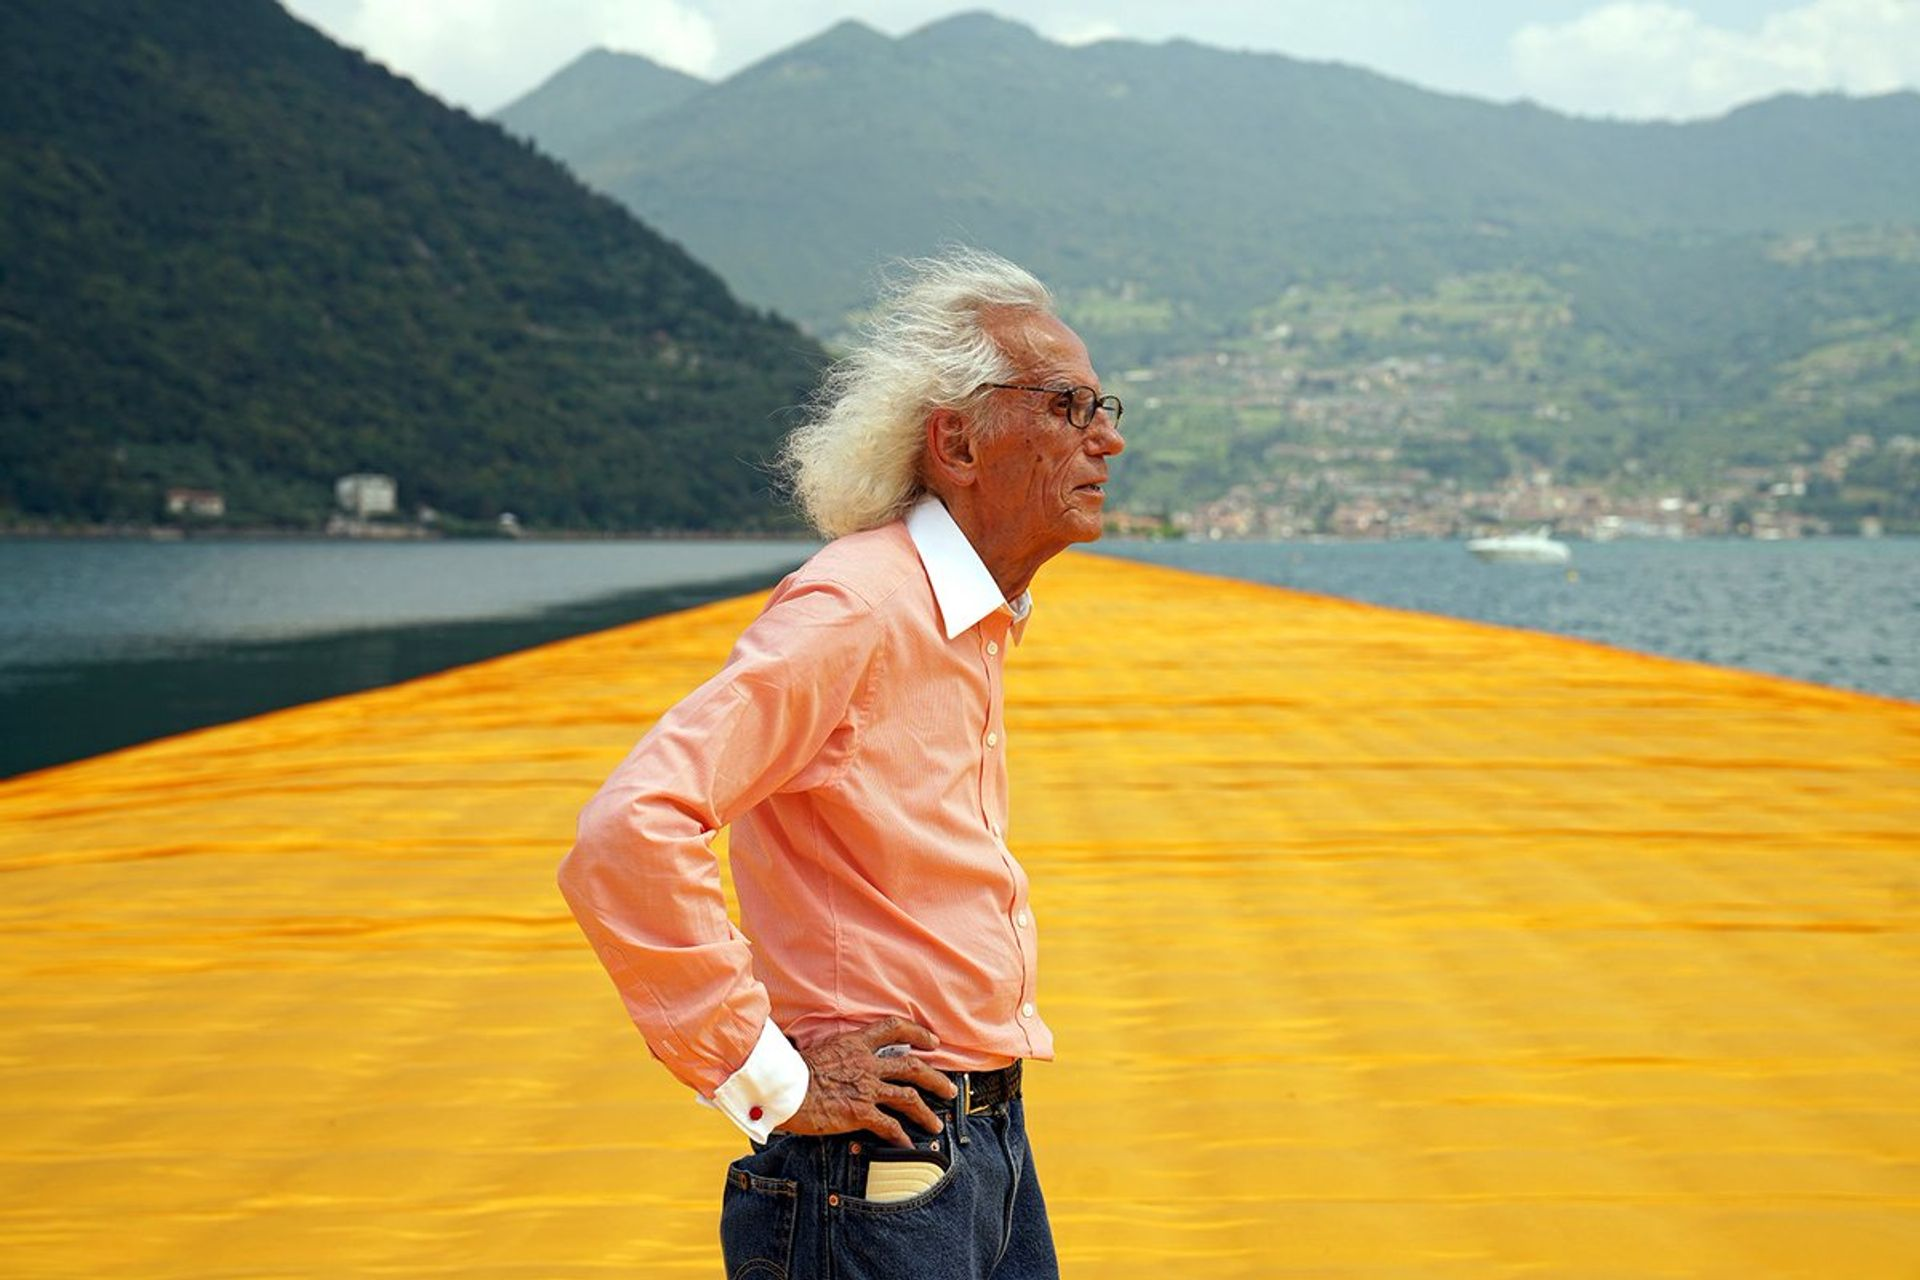 Christo with his project The Floating Piers (2015) on Lake Iseo in Italy © Christo and Jeanne-Claude